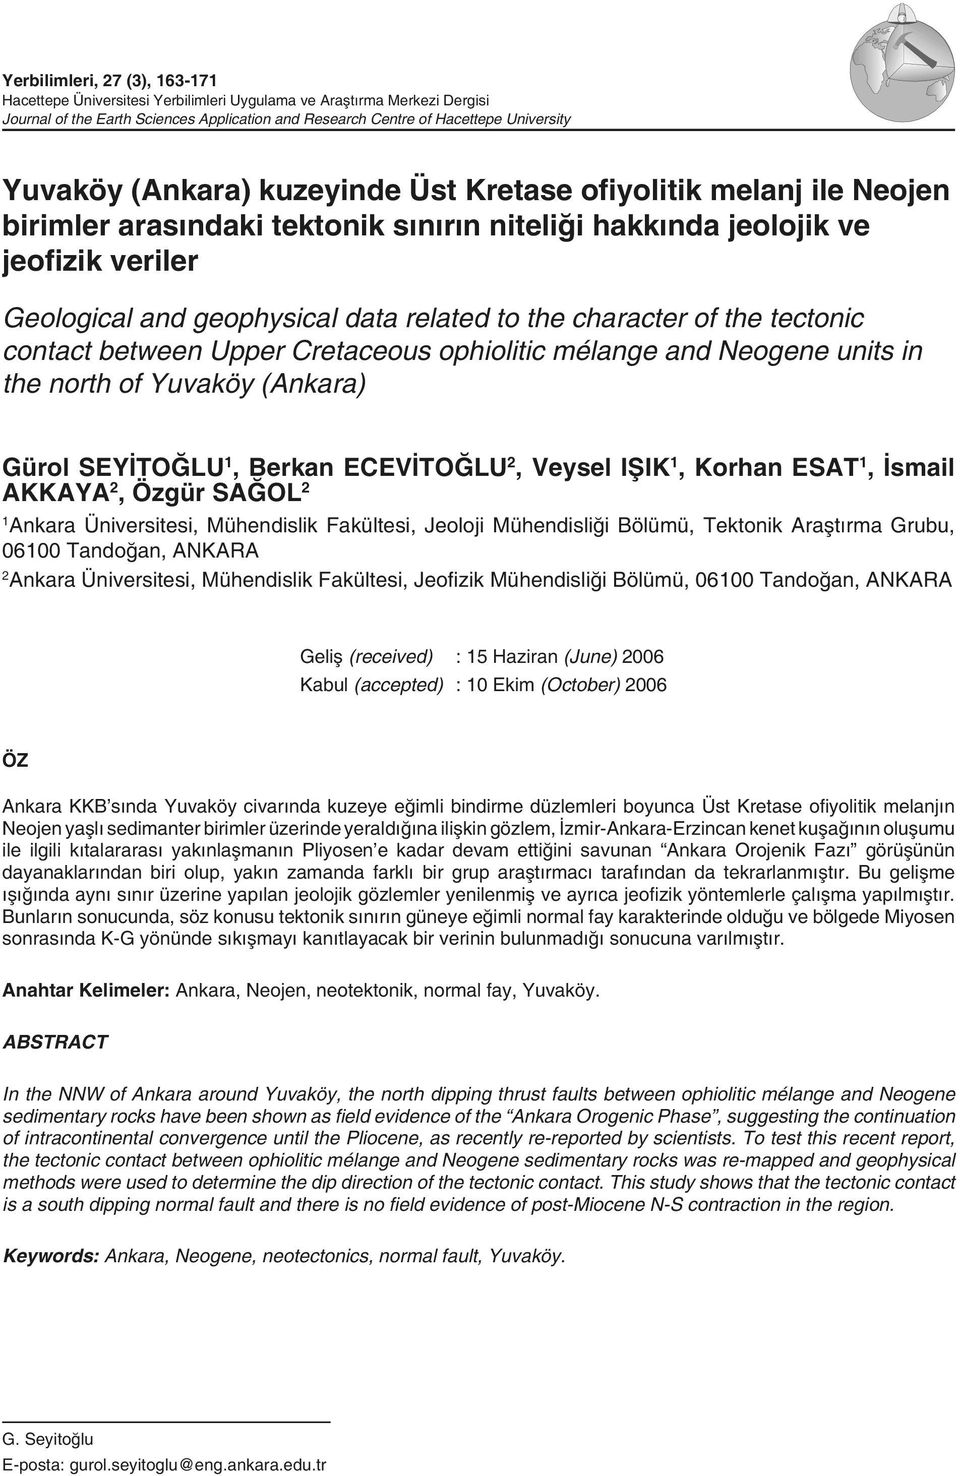 character of the tectonic contact between Upper Cretaceous ophiolitic mélange and Neogene units in the north of Yuvaköy (Ankara) Gürol SEYİTOĞLU 1, Berkan ECEVİTOĞLU 2, Veysel IŞIK 1, Korhan ESAT 1,